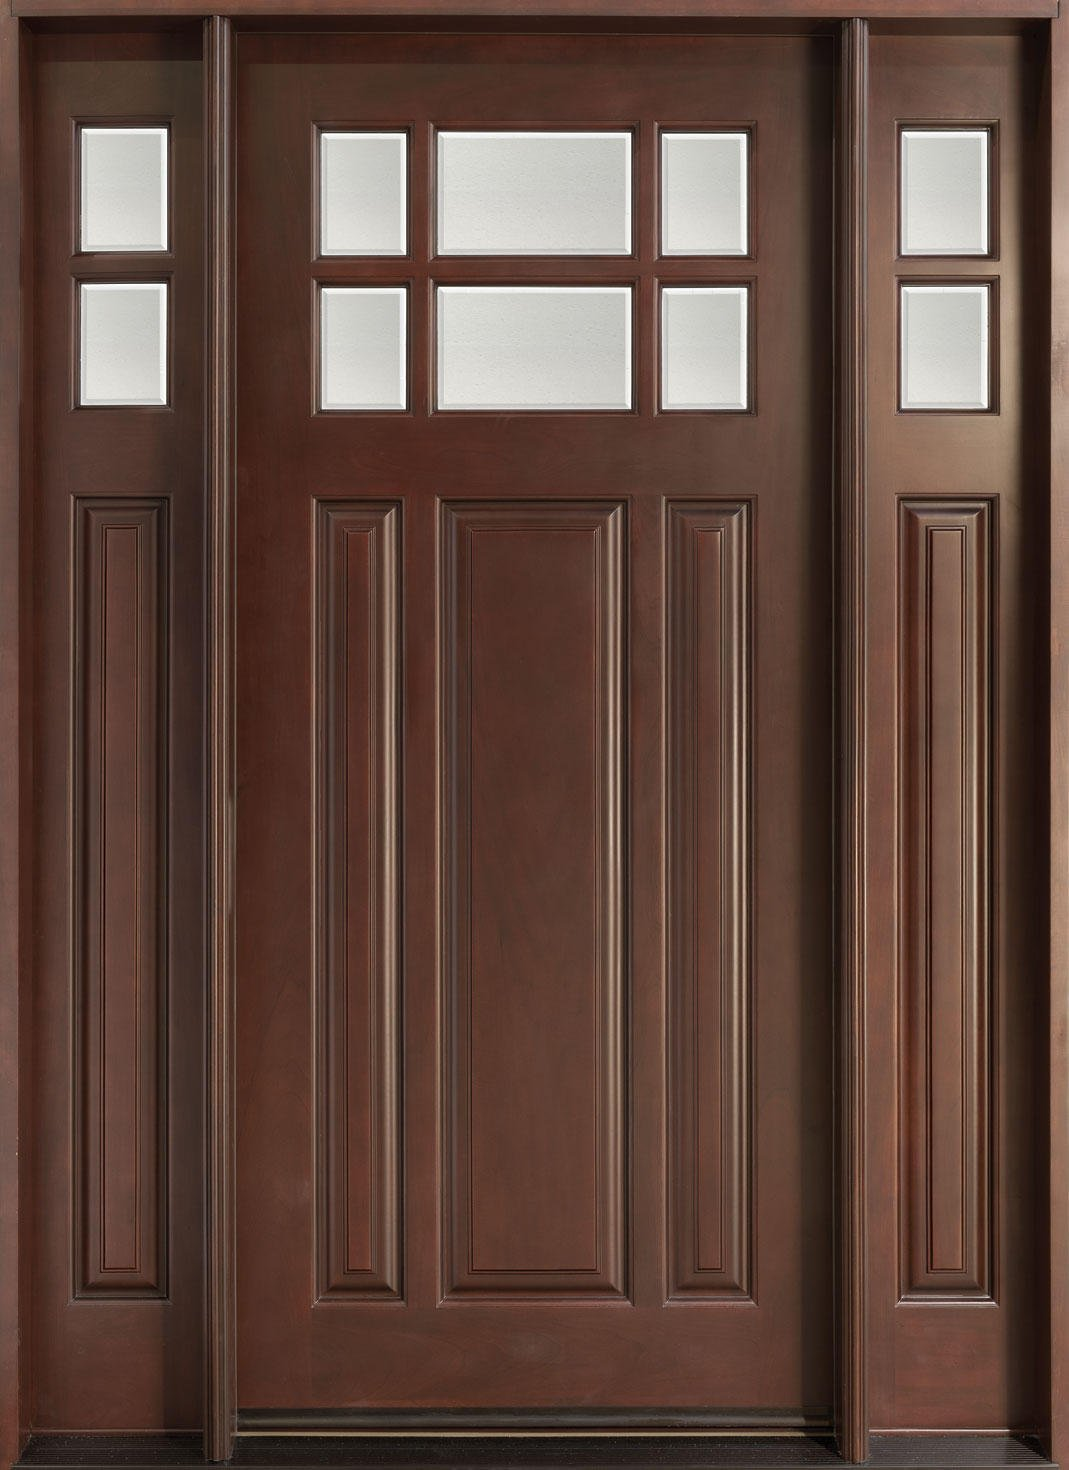 Original Solid Wood Exterior Doors